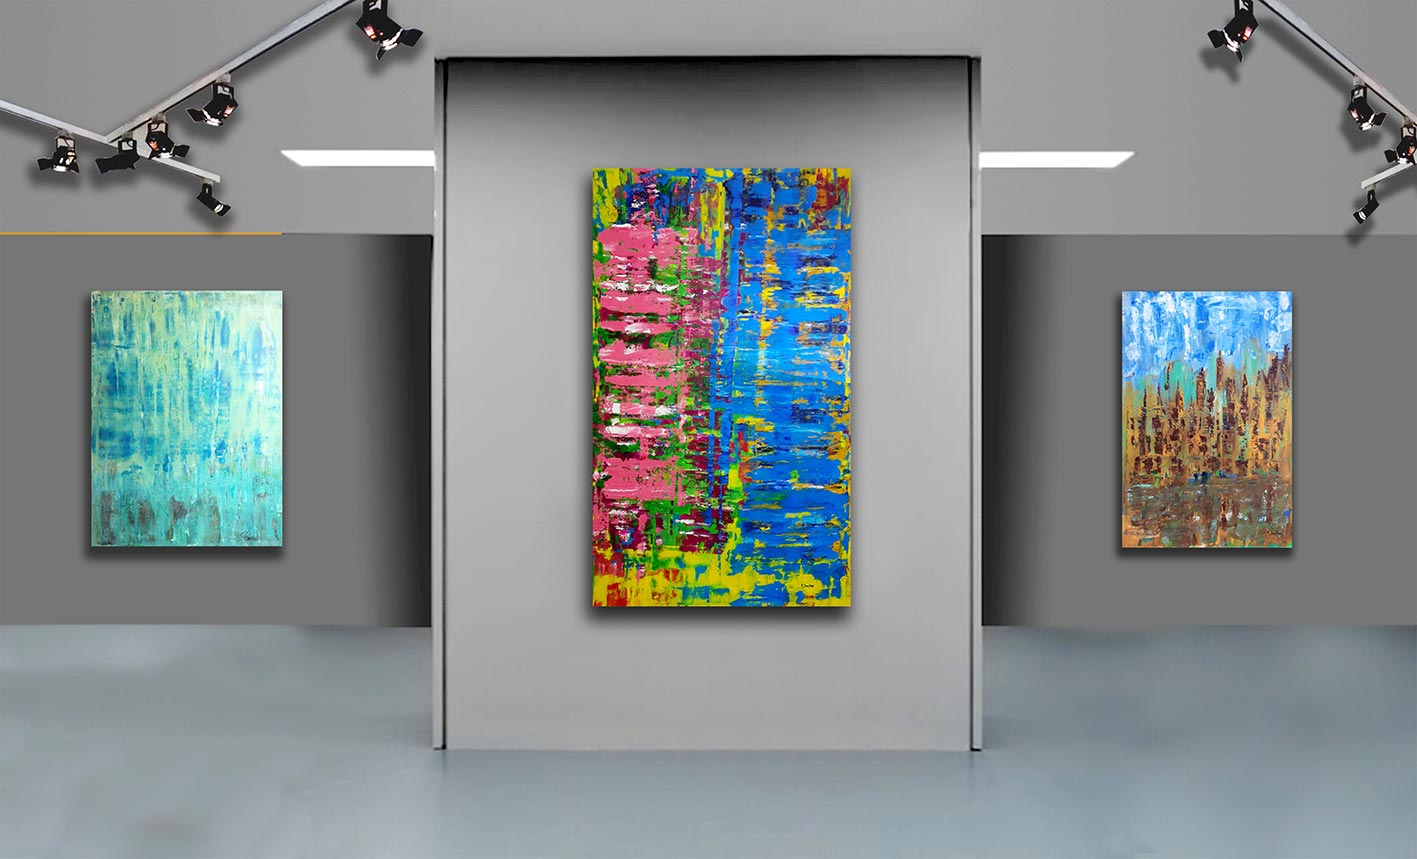 Colors-symphony-patrick-joosten-2021-January-20nd-In-situation